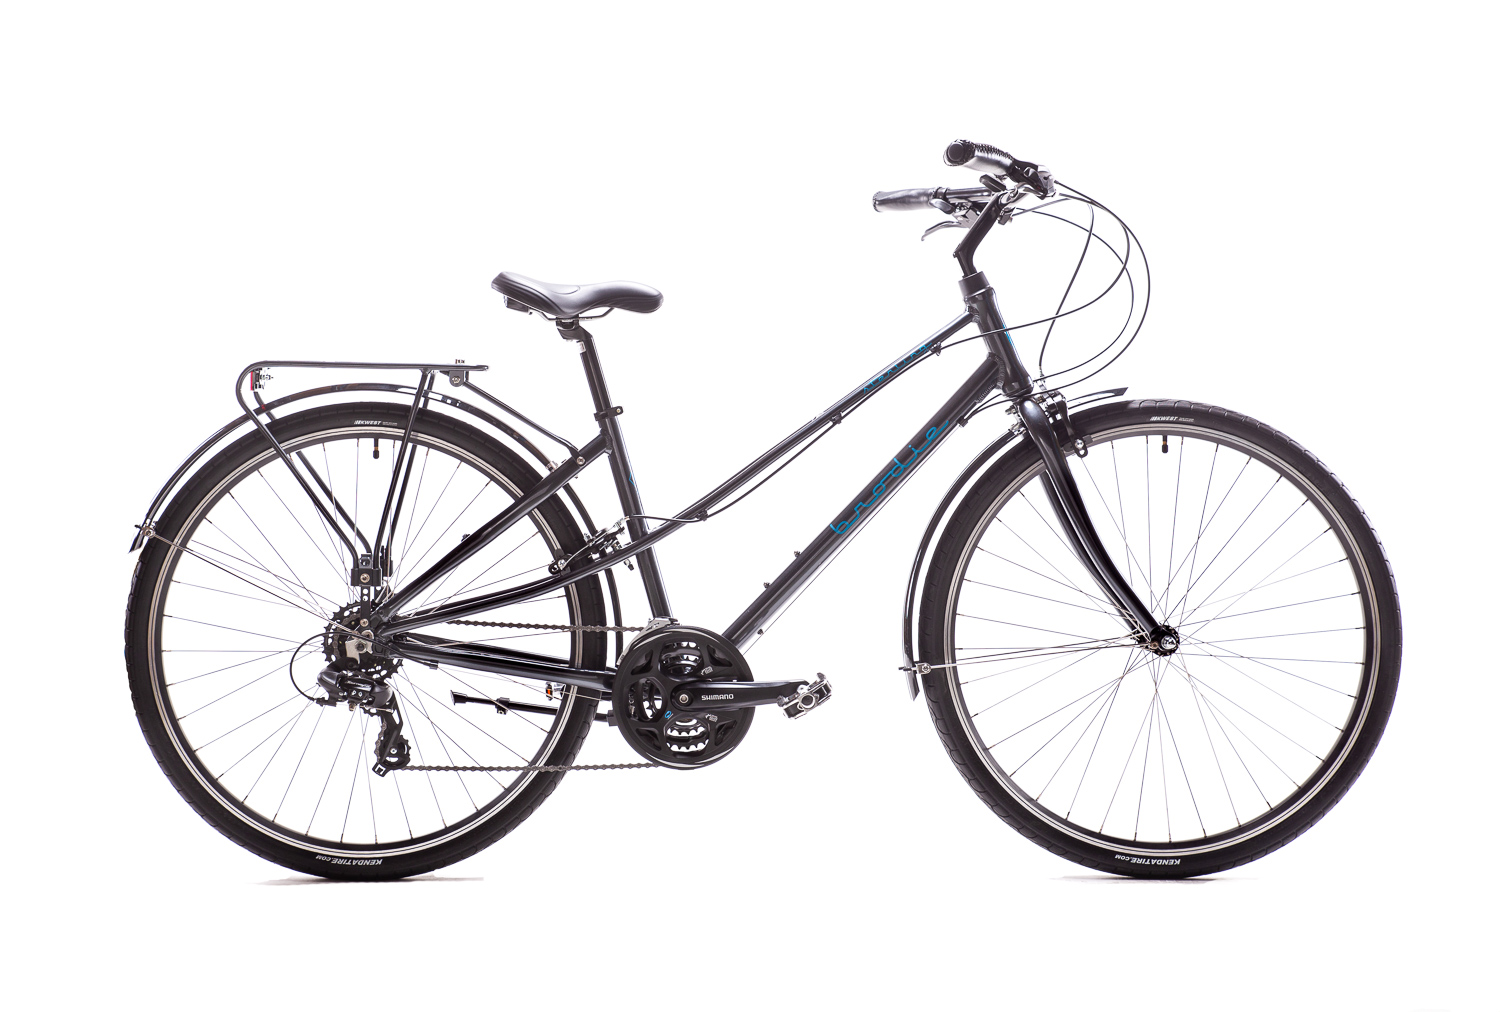 Sterling Mixte - $699 (MIXTE SOLD OUT - Traditional frame style available in Medium & Large)